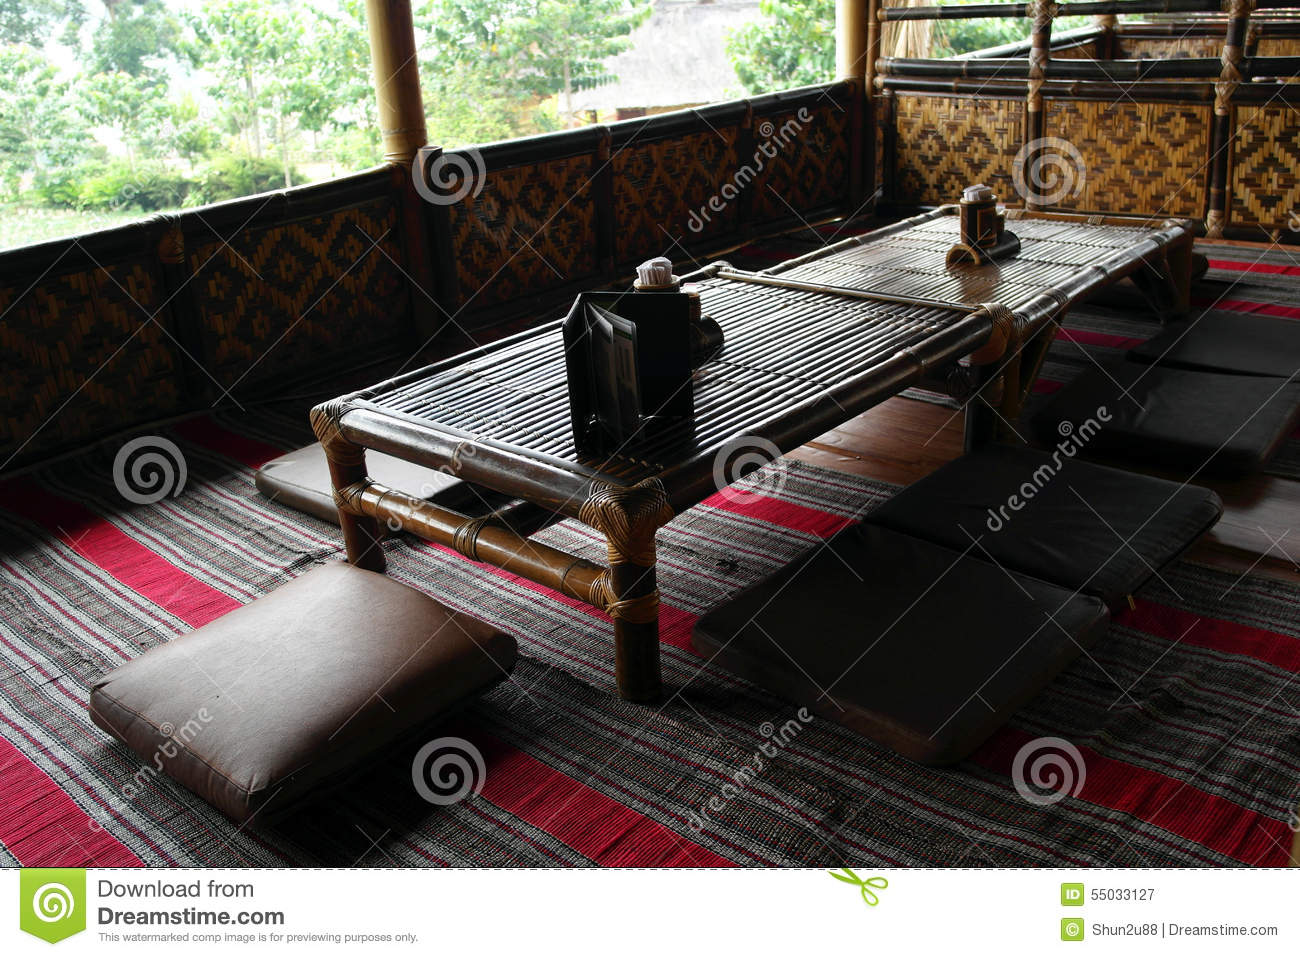 luxury restaurant interior stock photo - image: 54497824